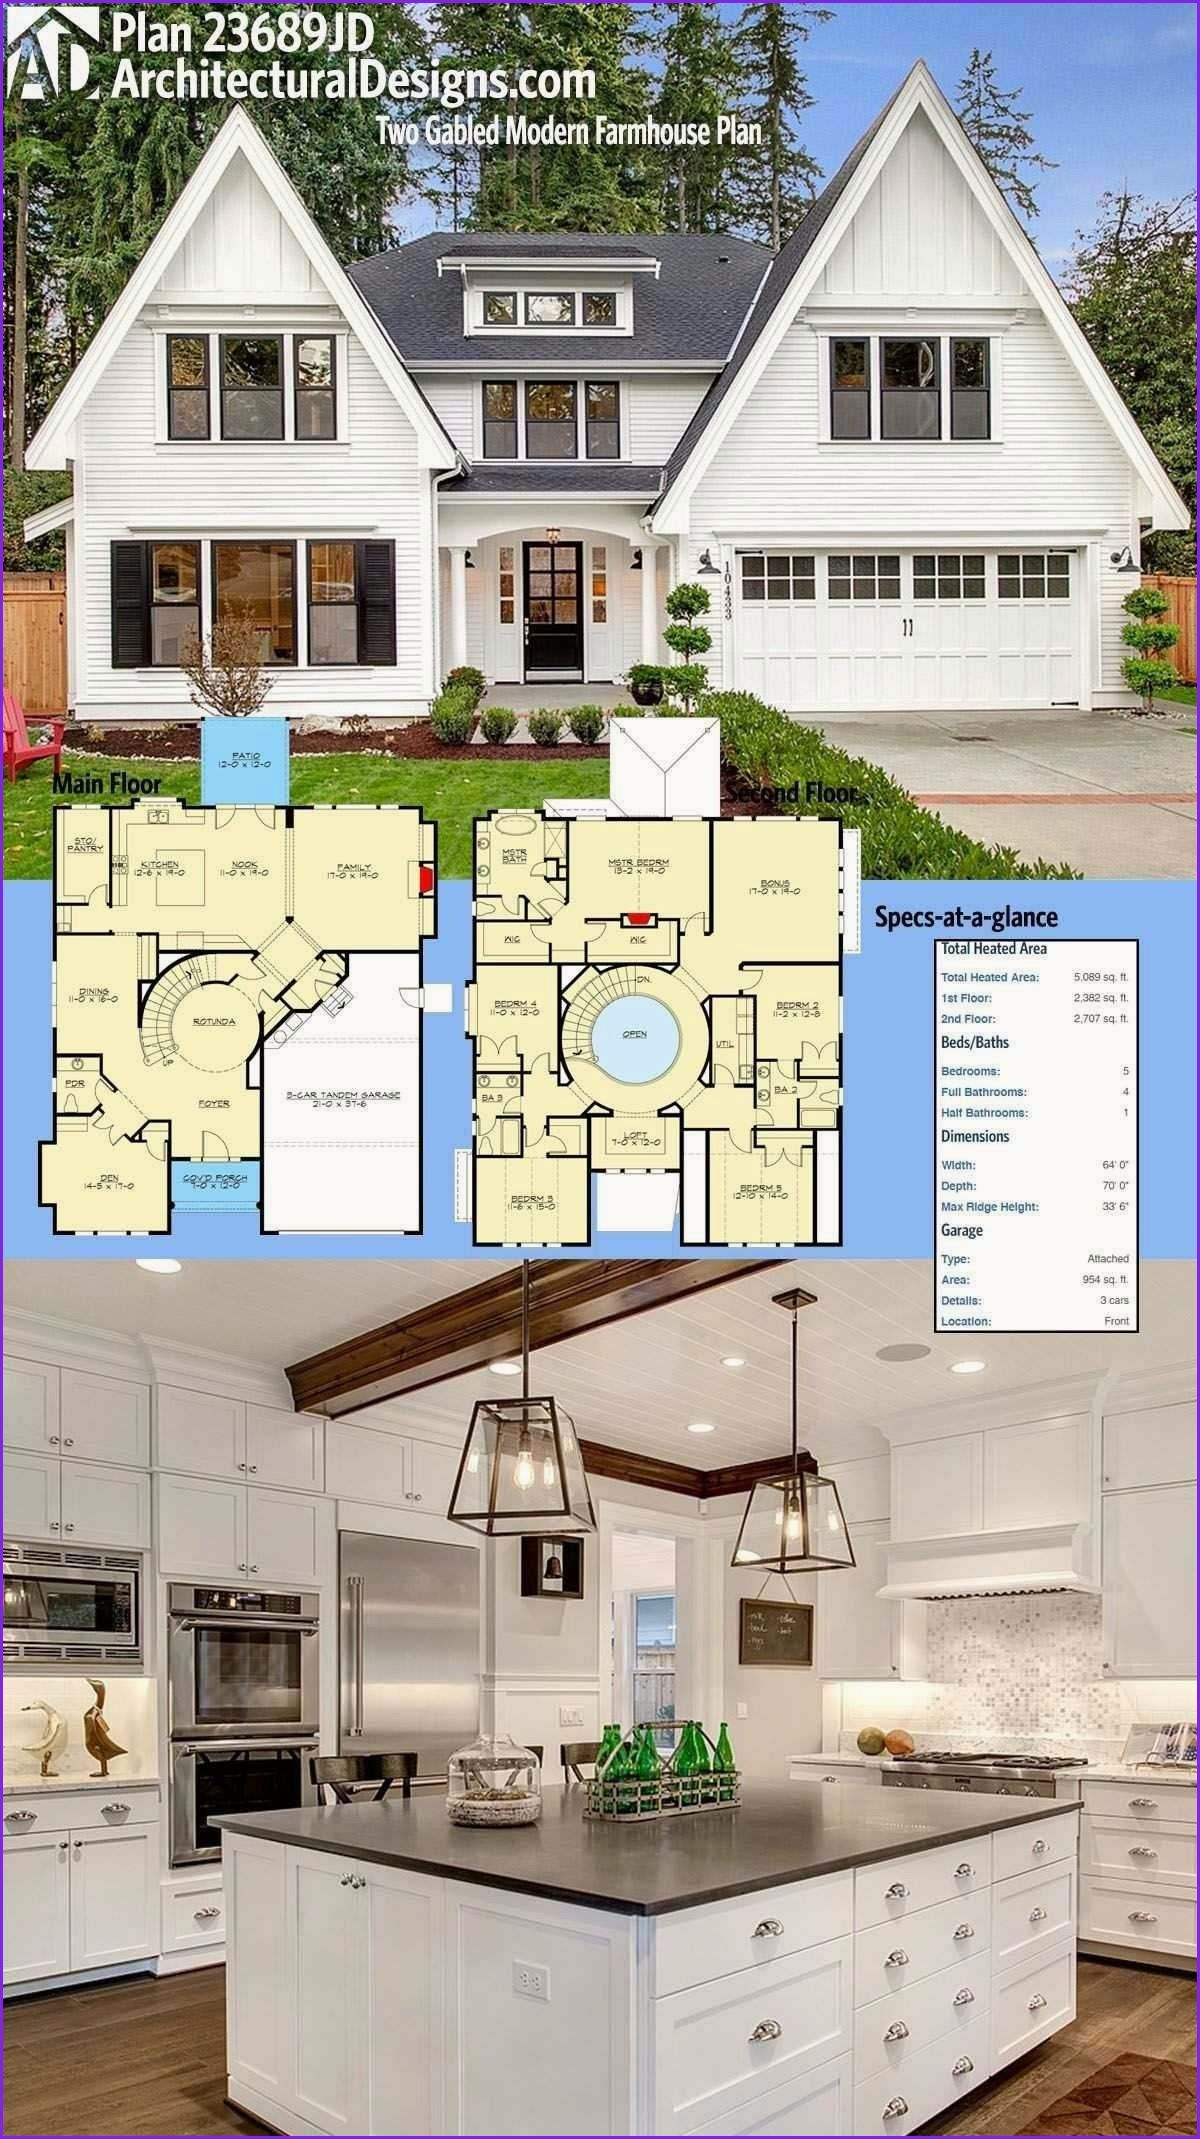 Awesome Unique Duplex Plans In 2020 Modern Farmhouse Plans Unique House Plans Modern House Floor Plans